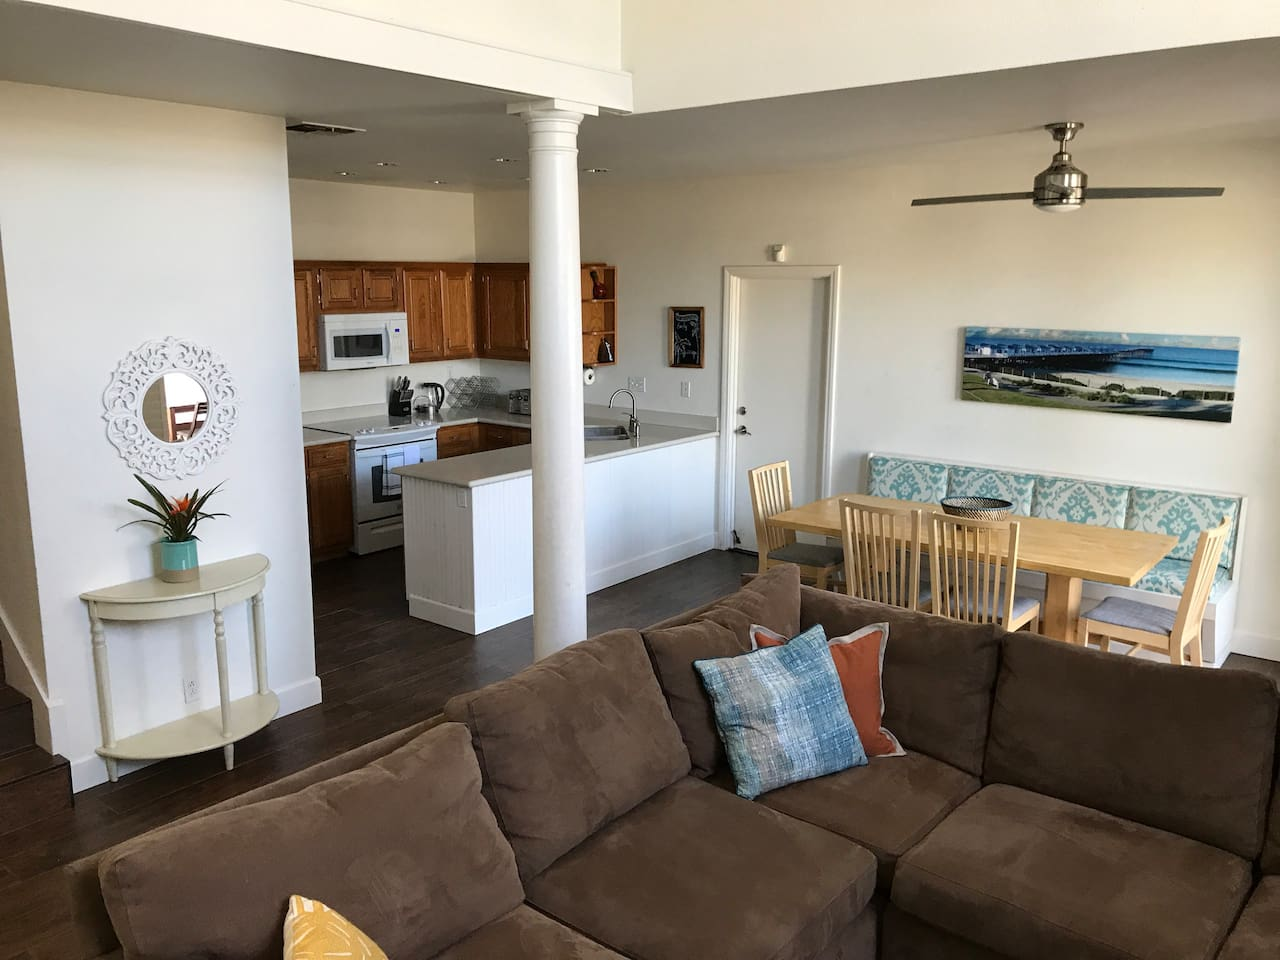 Welcome to beach living! Find location and privacy in this spacious townhome just steps to the beach, boardwalk and pier in the best location in Pacific Beach.